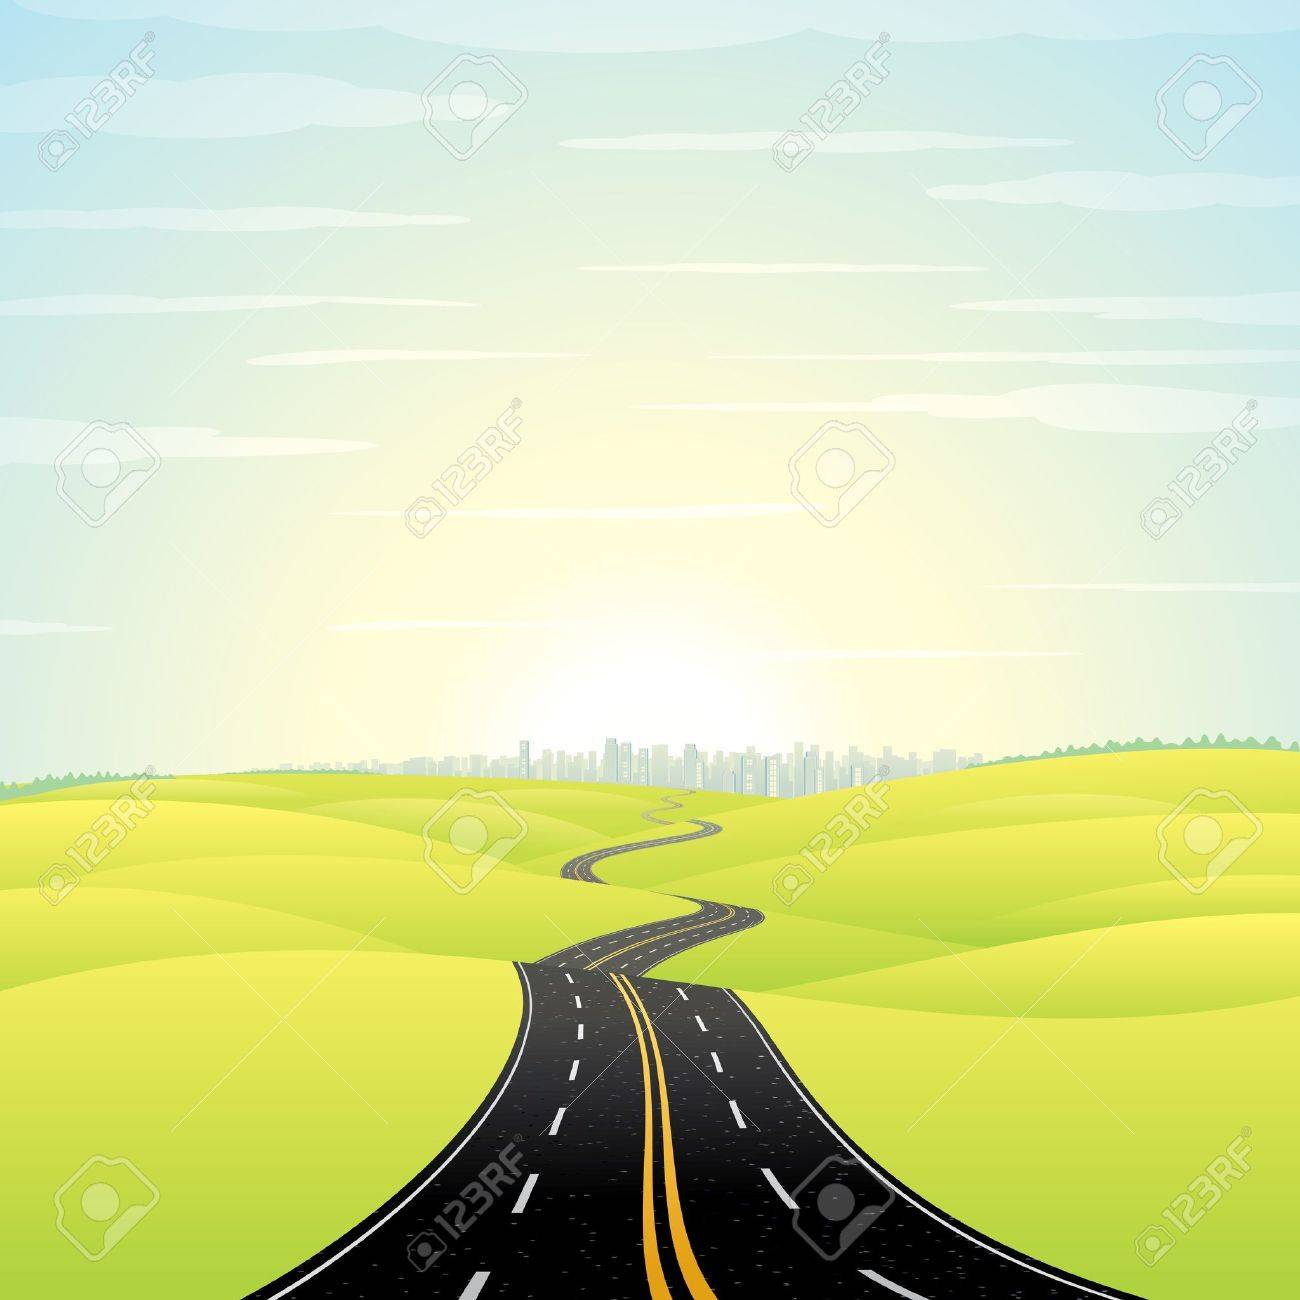 Abstract Illustration of Landscape with Highway  Picture of Road Going Toward the Skyscrapers in a Modern City at Sunrise  Colorful Vector Image Stock Vector - 13510604